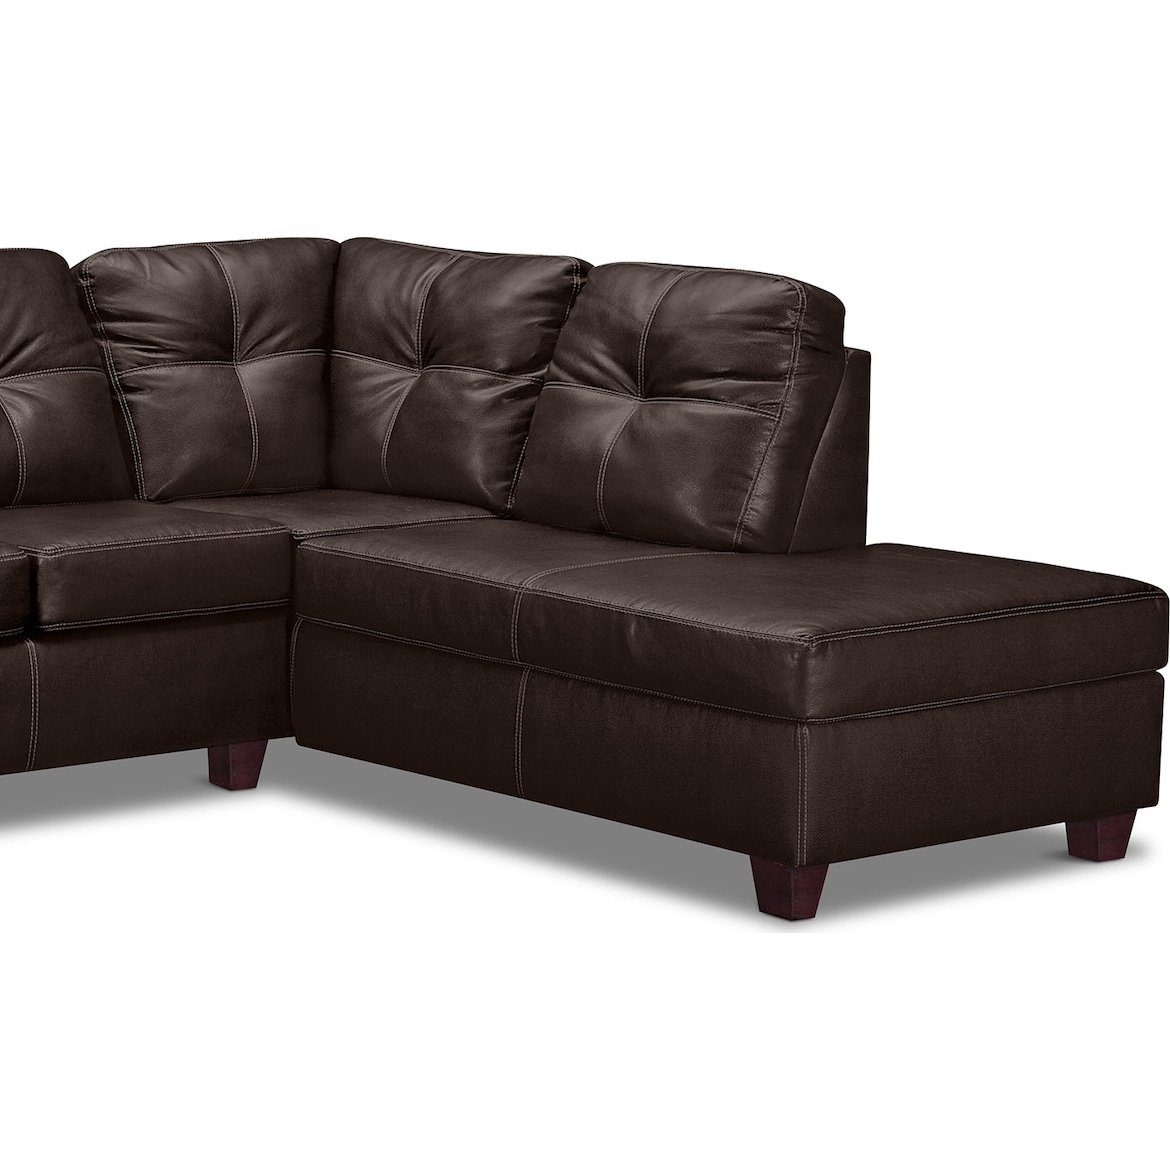 Ricardo 2 Piece Queen Sleeper Sectional With Chaise